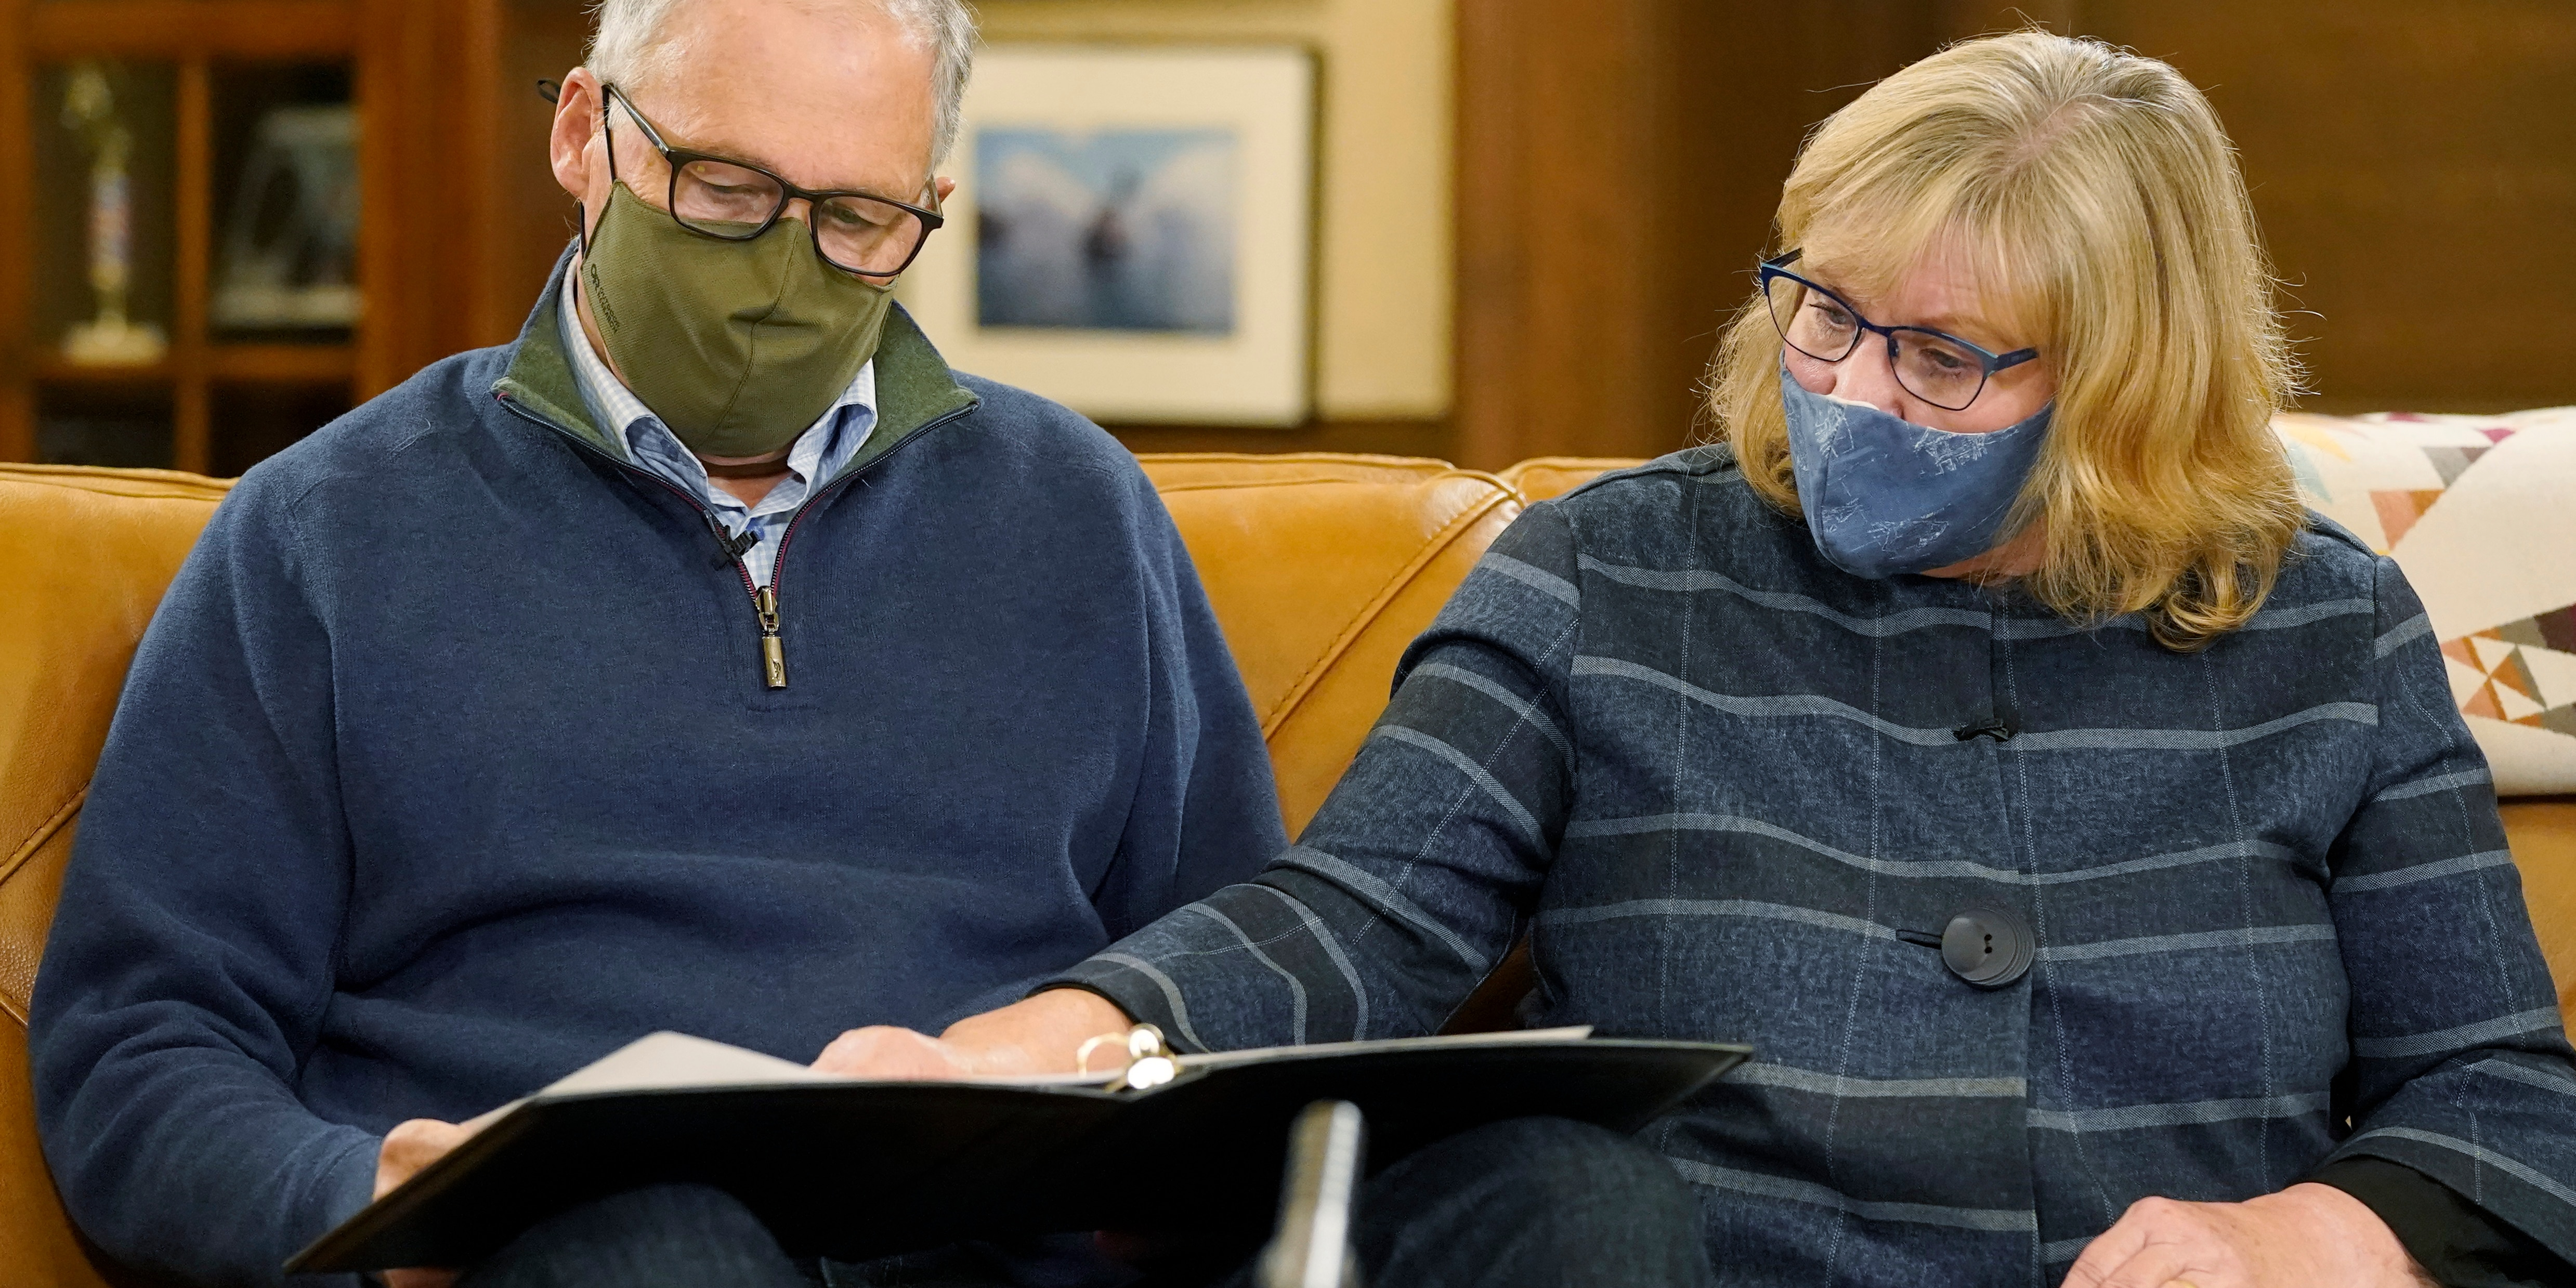 Washington Gov. Jay Inslee and his wife, Trudi, wear masks as they work on their speech before taking them off for a final rehearsal in the governor's office before making a statewide televised address on COVID-19, Nov. 12, 2020, at the Capitol in Olympia, Wash. (Associated Press)